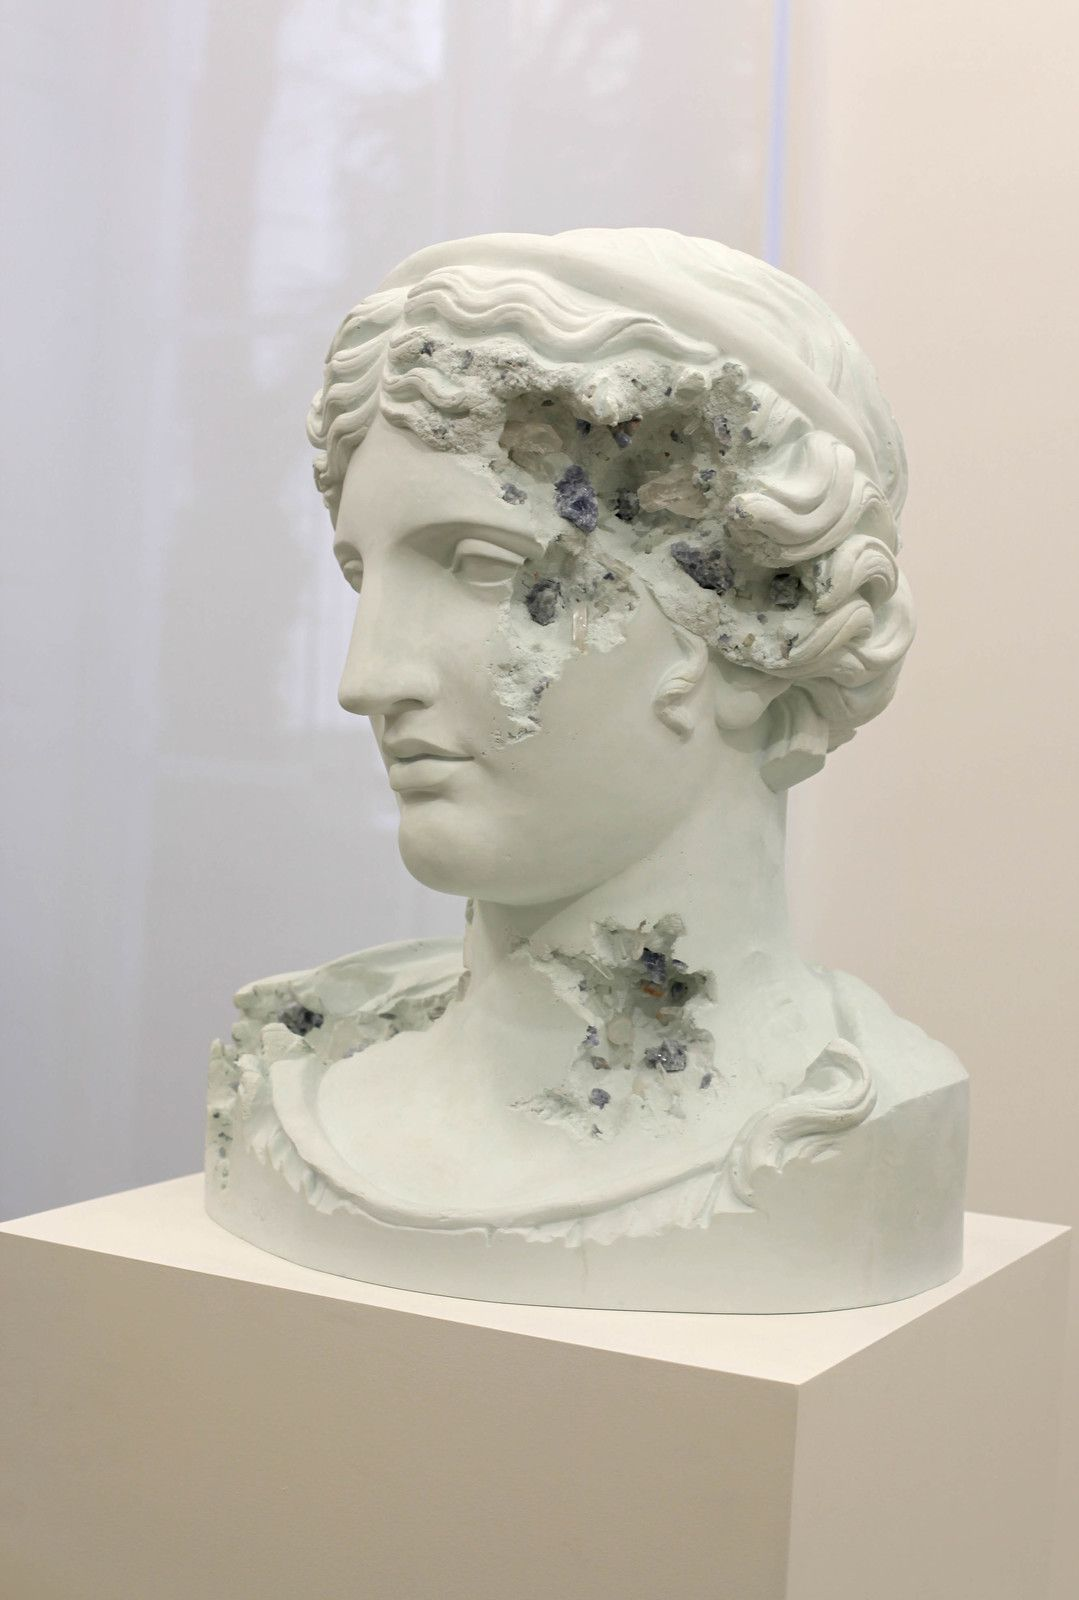 """Blue Calcite Eroded Melpomene"", 2019 de Daniel ARSHAM - Courtesy de l'artiste et la galerie Perrotin © Photo Éric Simon"